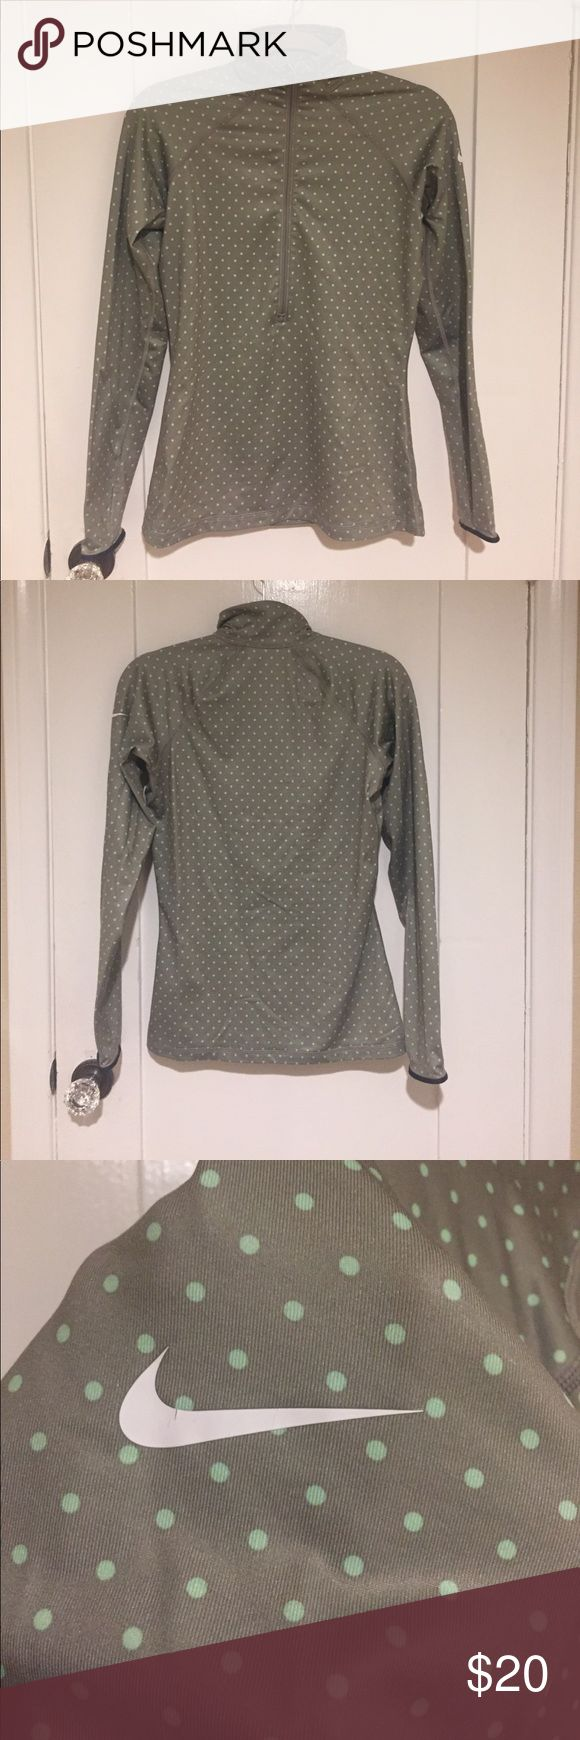 Nike women's running sweatshirt Gray/ mint green polka dot Nike Pro running sweatshirt with thumb holes. Nike Tops Sweatshirts & Hoodies